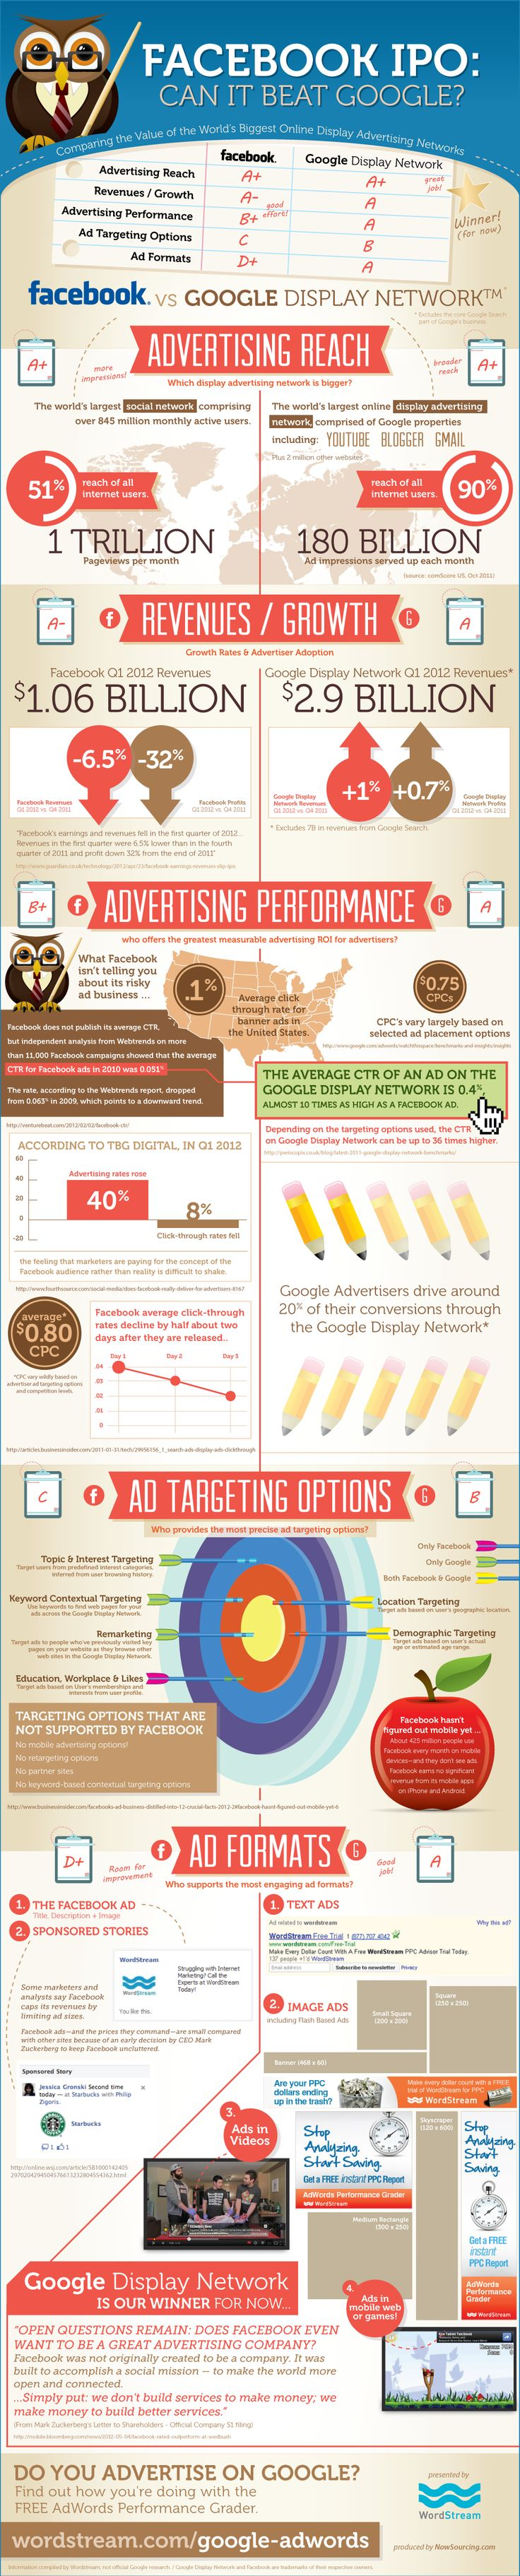 Can Facebook Ads Ever Beat Google? [INFOGRAPHIC]